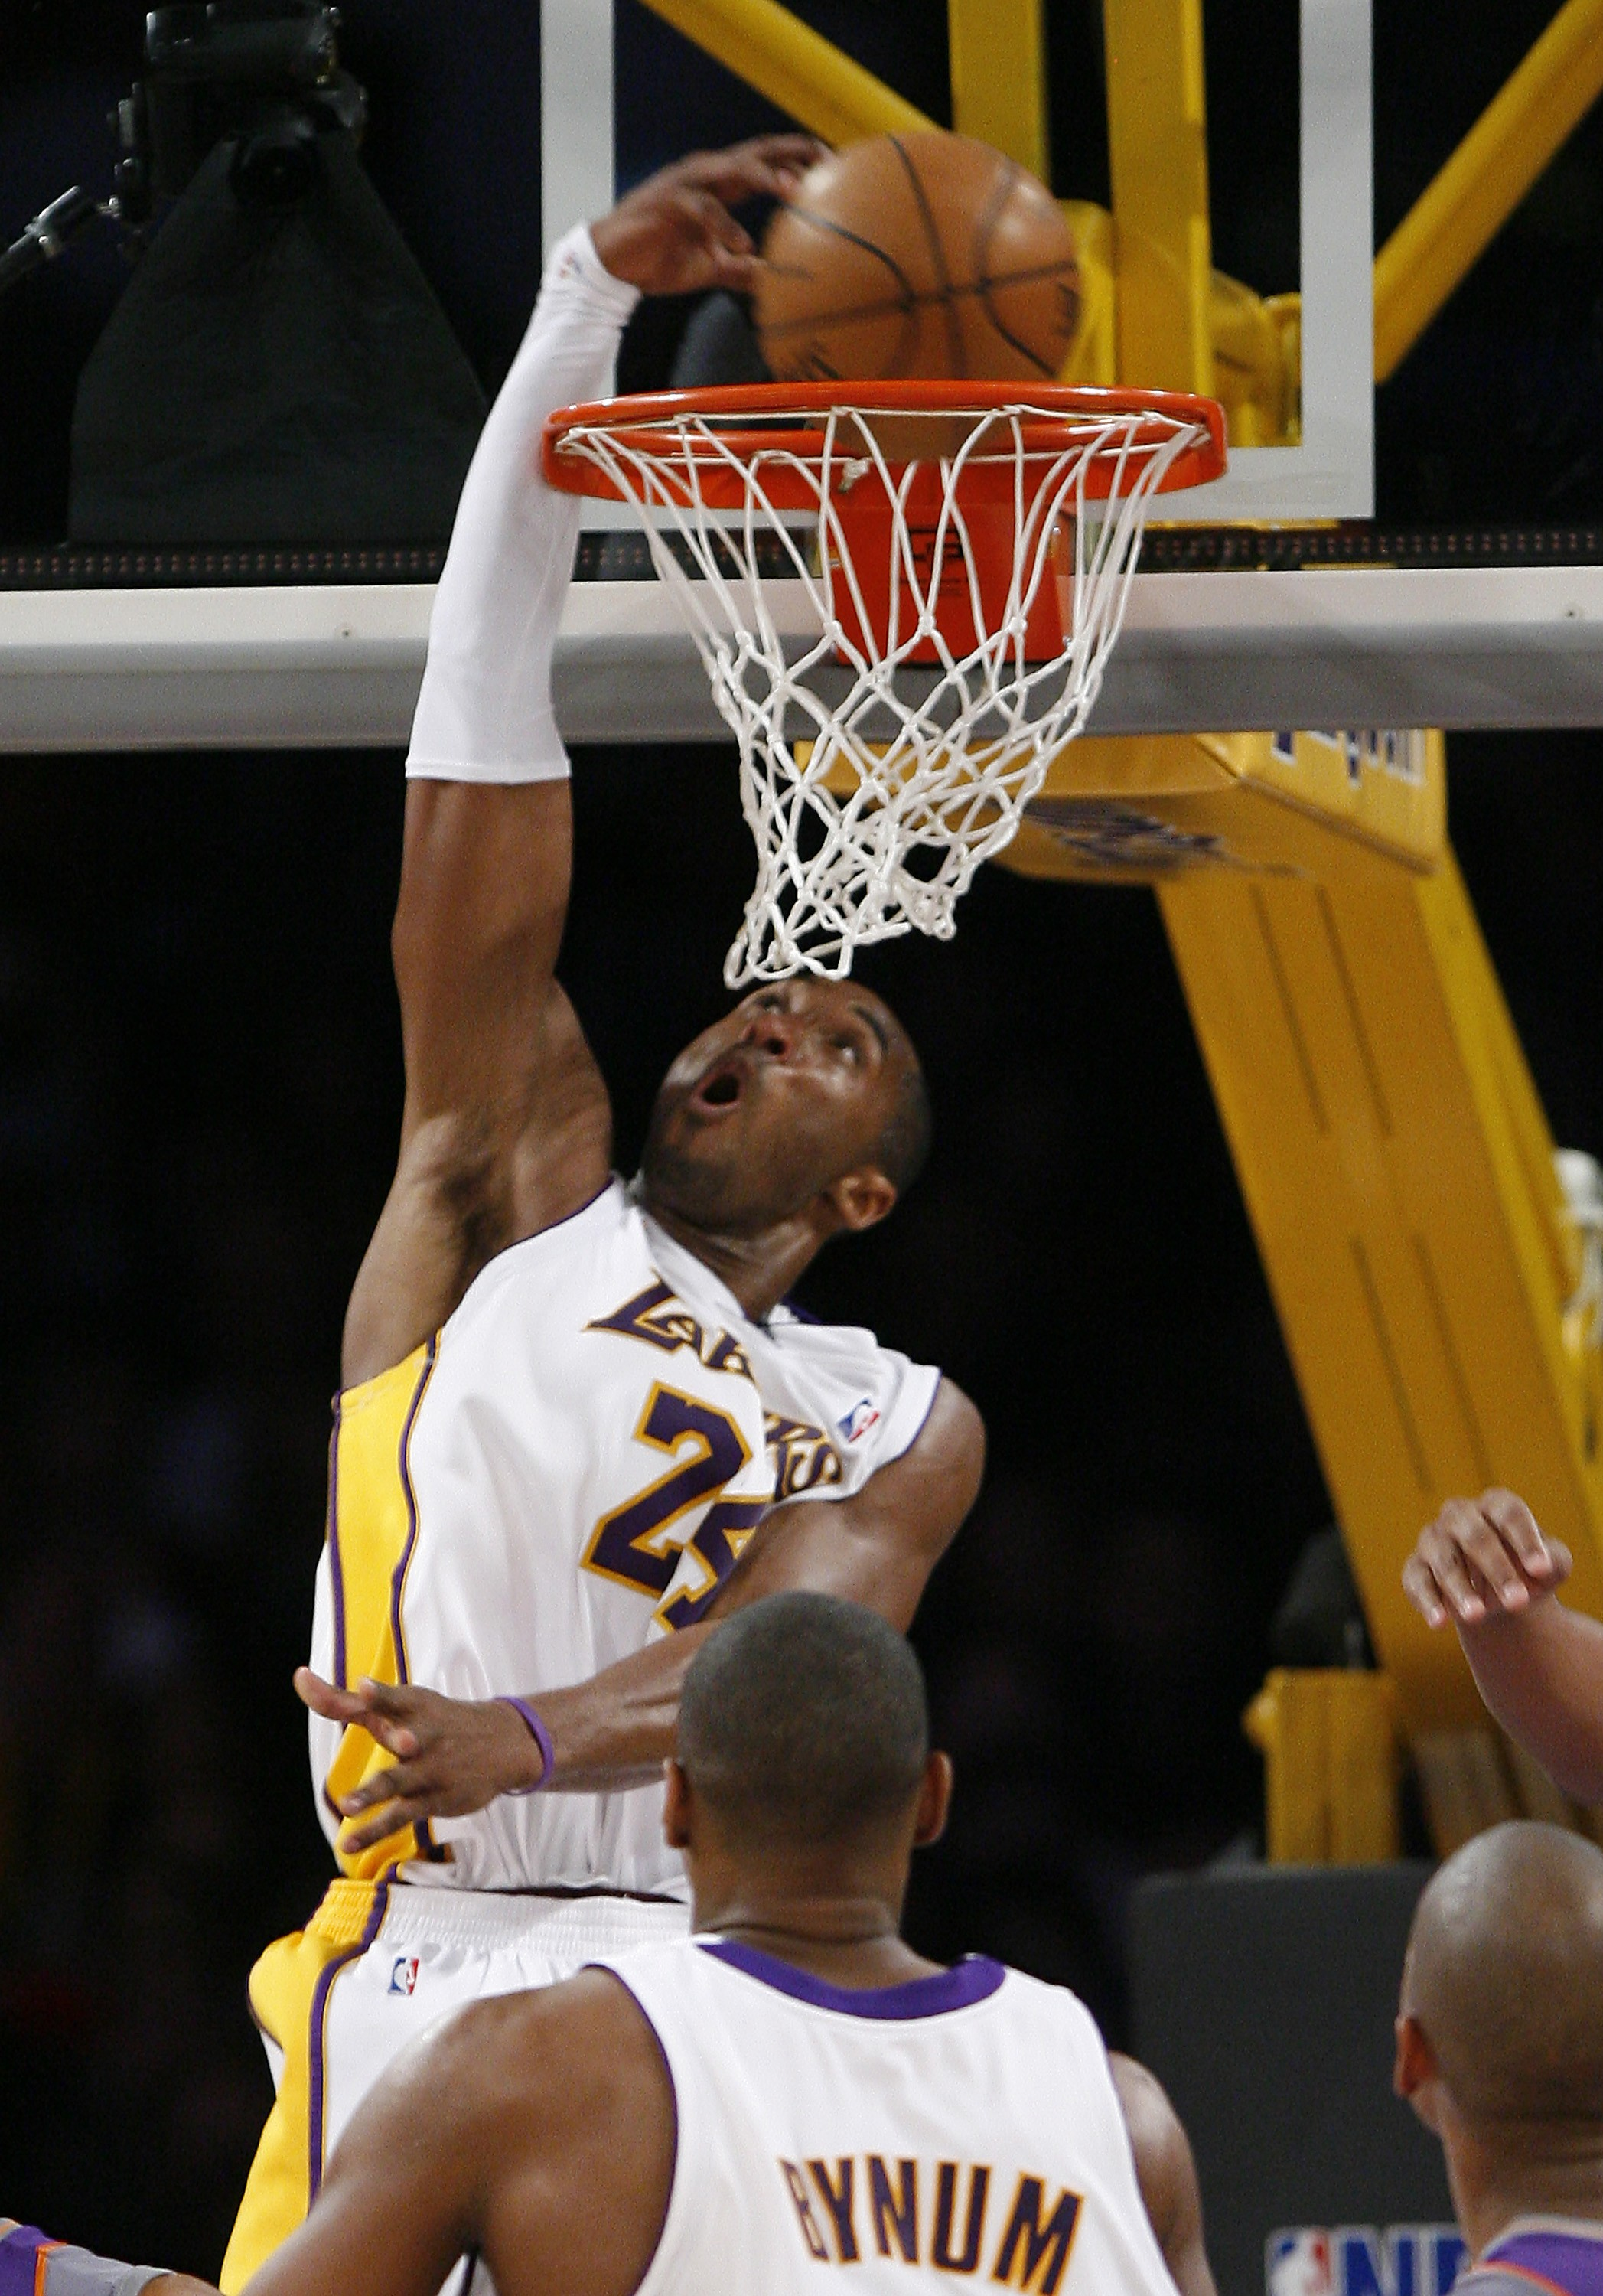 Los Angeles Lakers' Kobe Bryant dunks in the second half of the NBA basketball game against the Phoenix Suns on Tuesday in Los Angeles, California.